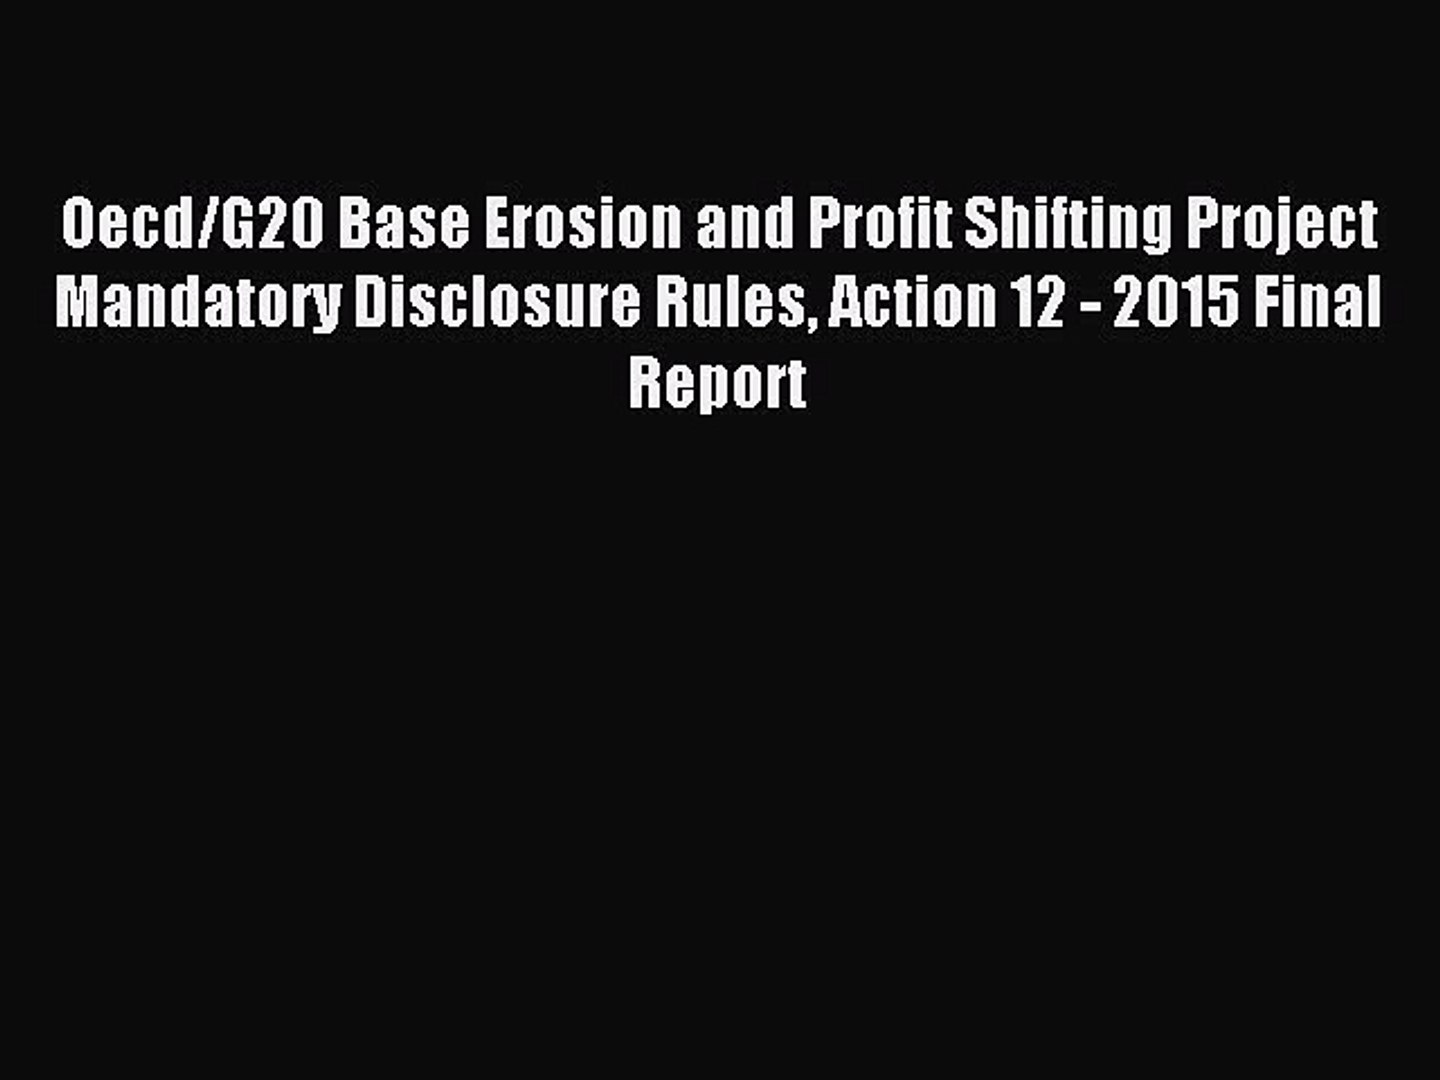 Read Oecd/G20 Base Erosion and Profit Shifting Project Mandatory Disclosure Rules Action 12